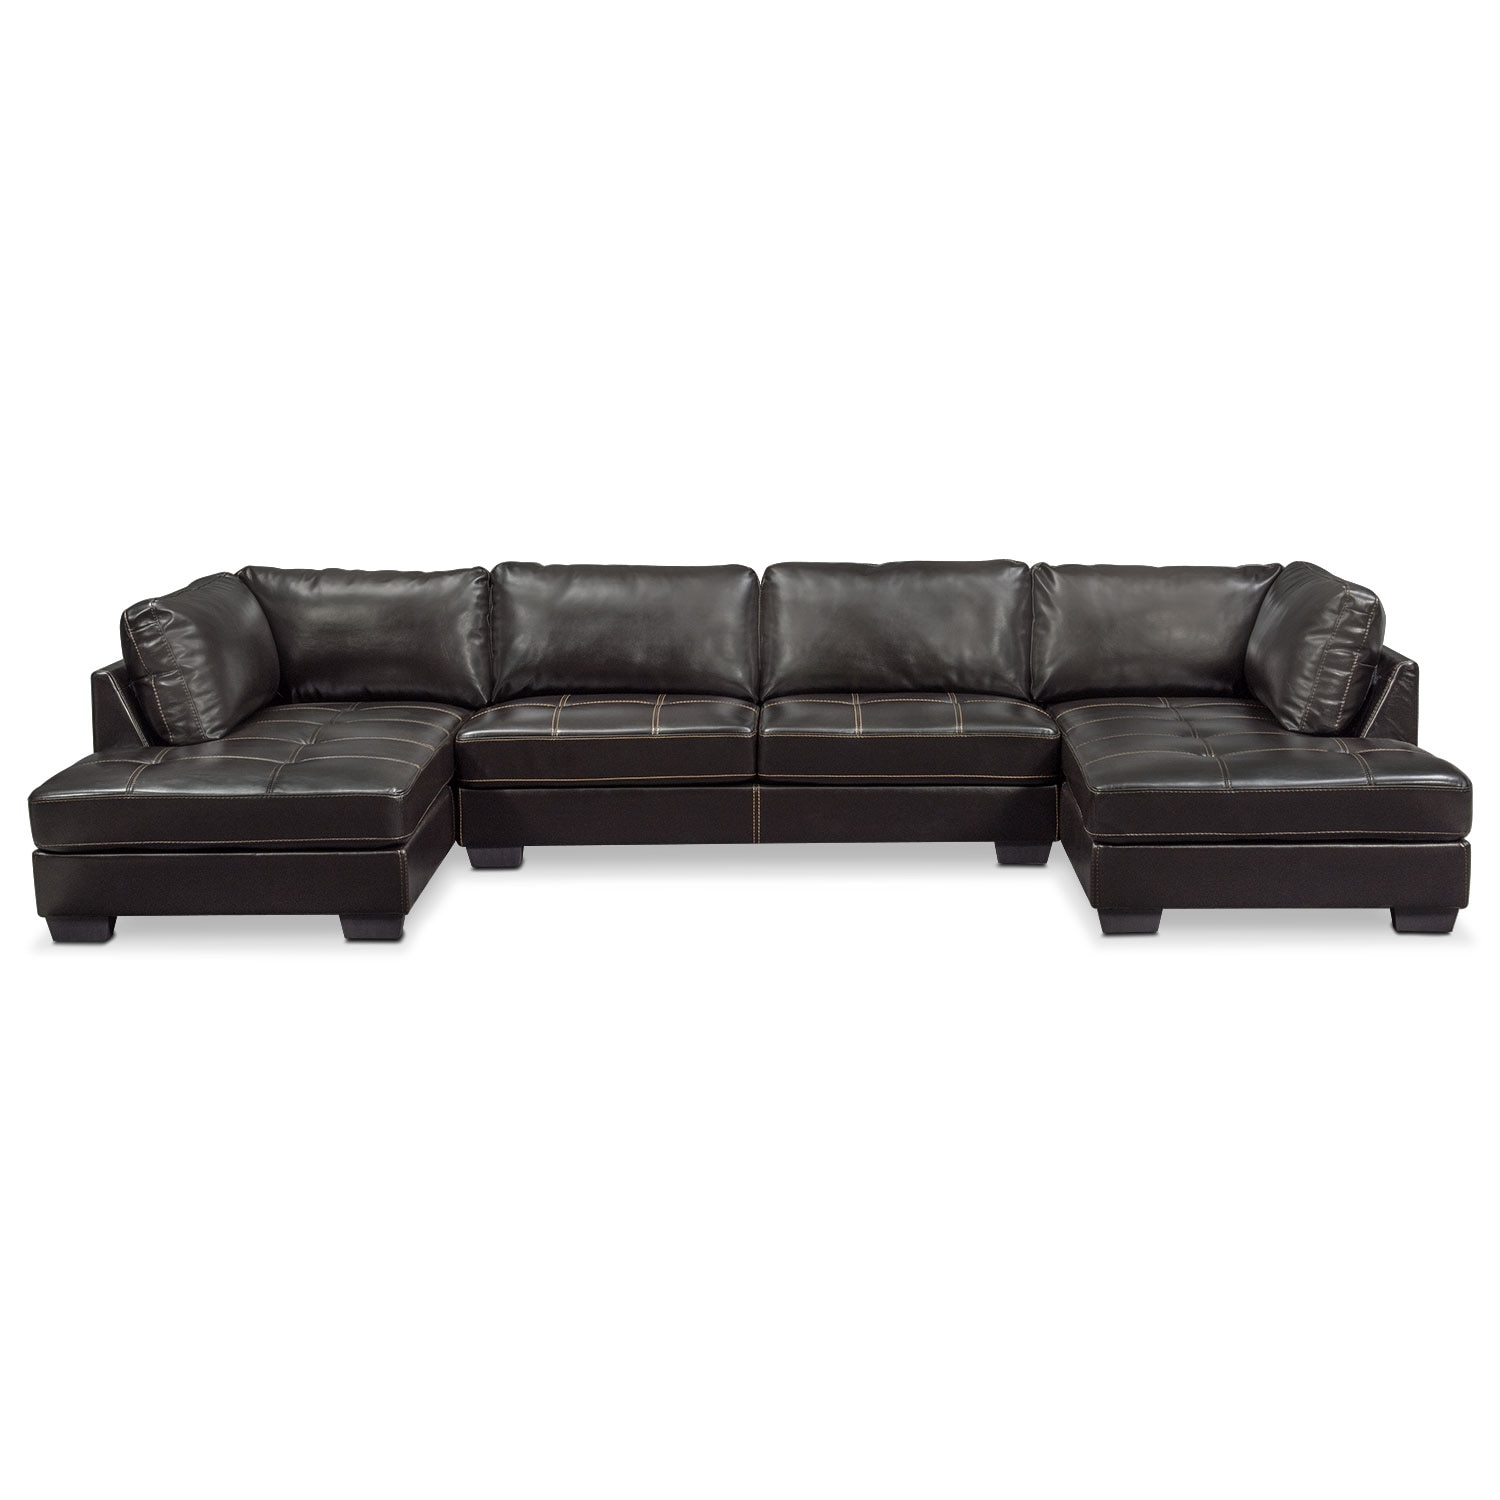 Santana 3-Piece Sectional - Black  sc 1 st  Value City Furniture : vcf sectional - Sectionals, Sofas & Couches